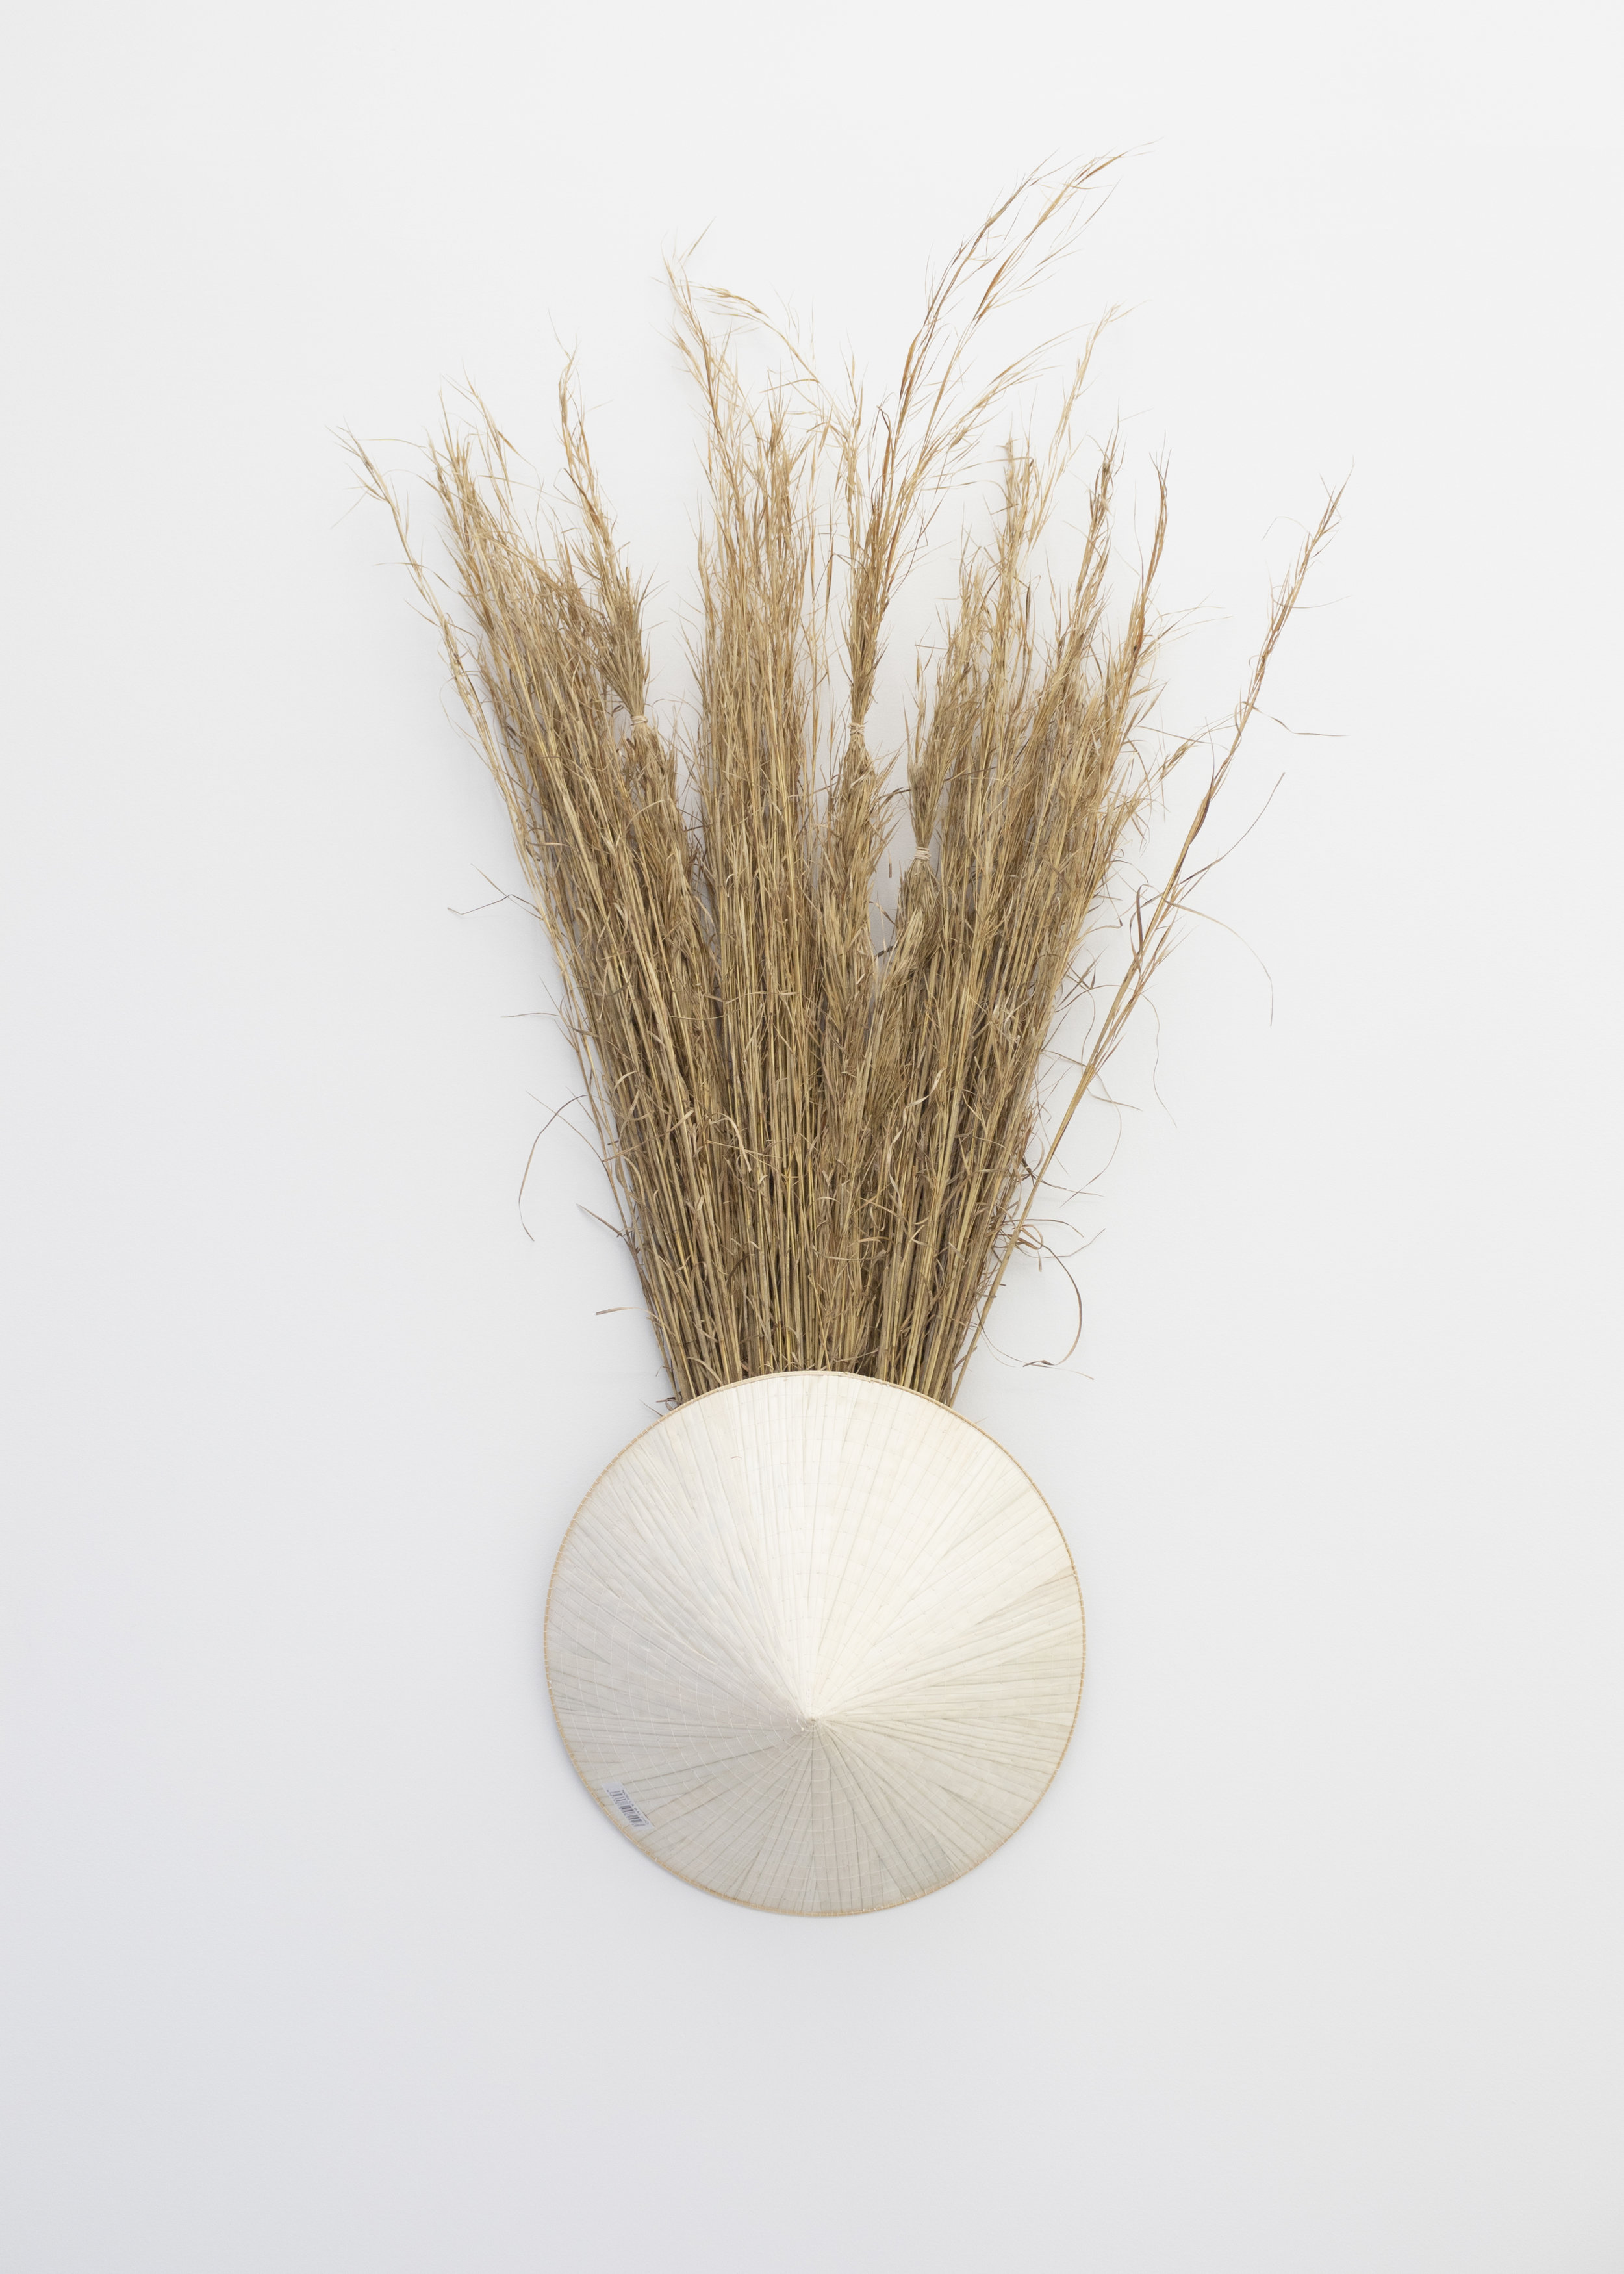 Millian Giang Lien Pham,  Preforge: 9 Stages (One) , 2019. Grass, conical hat